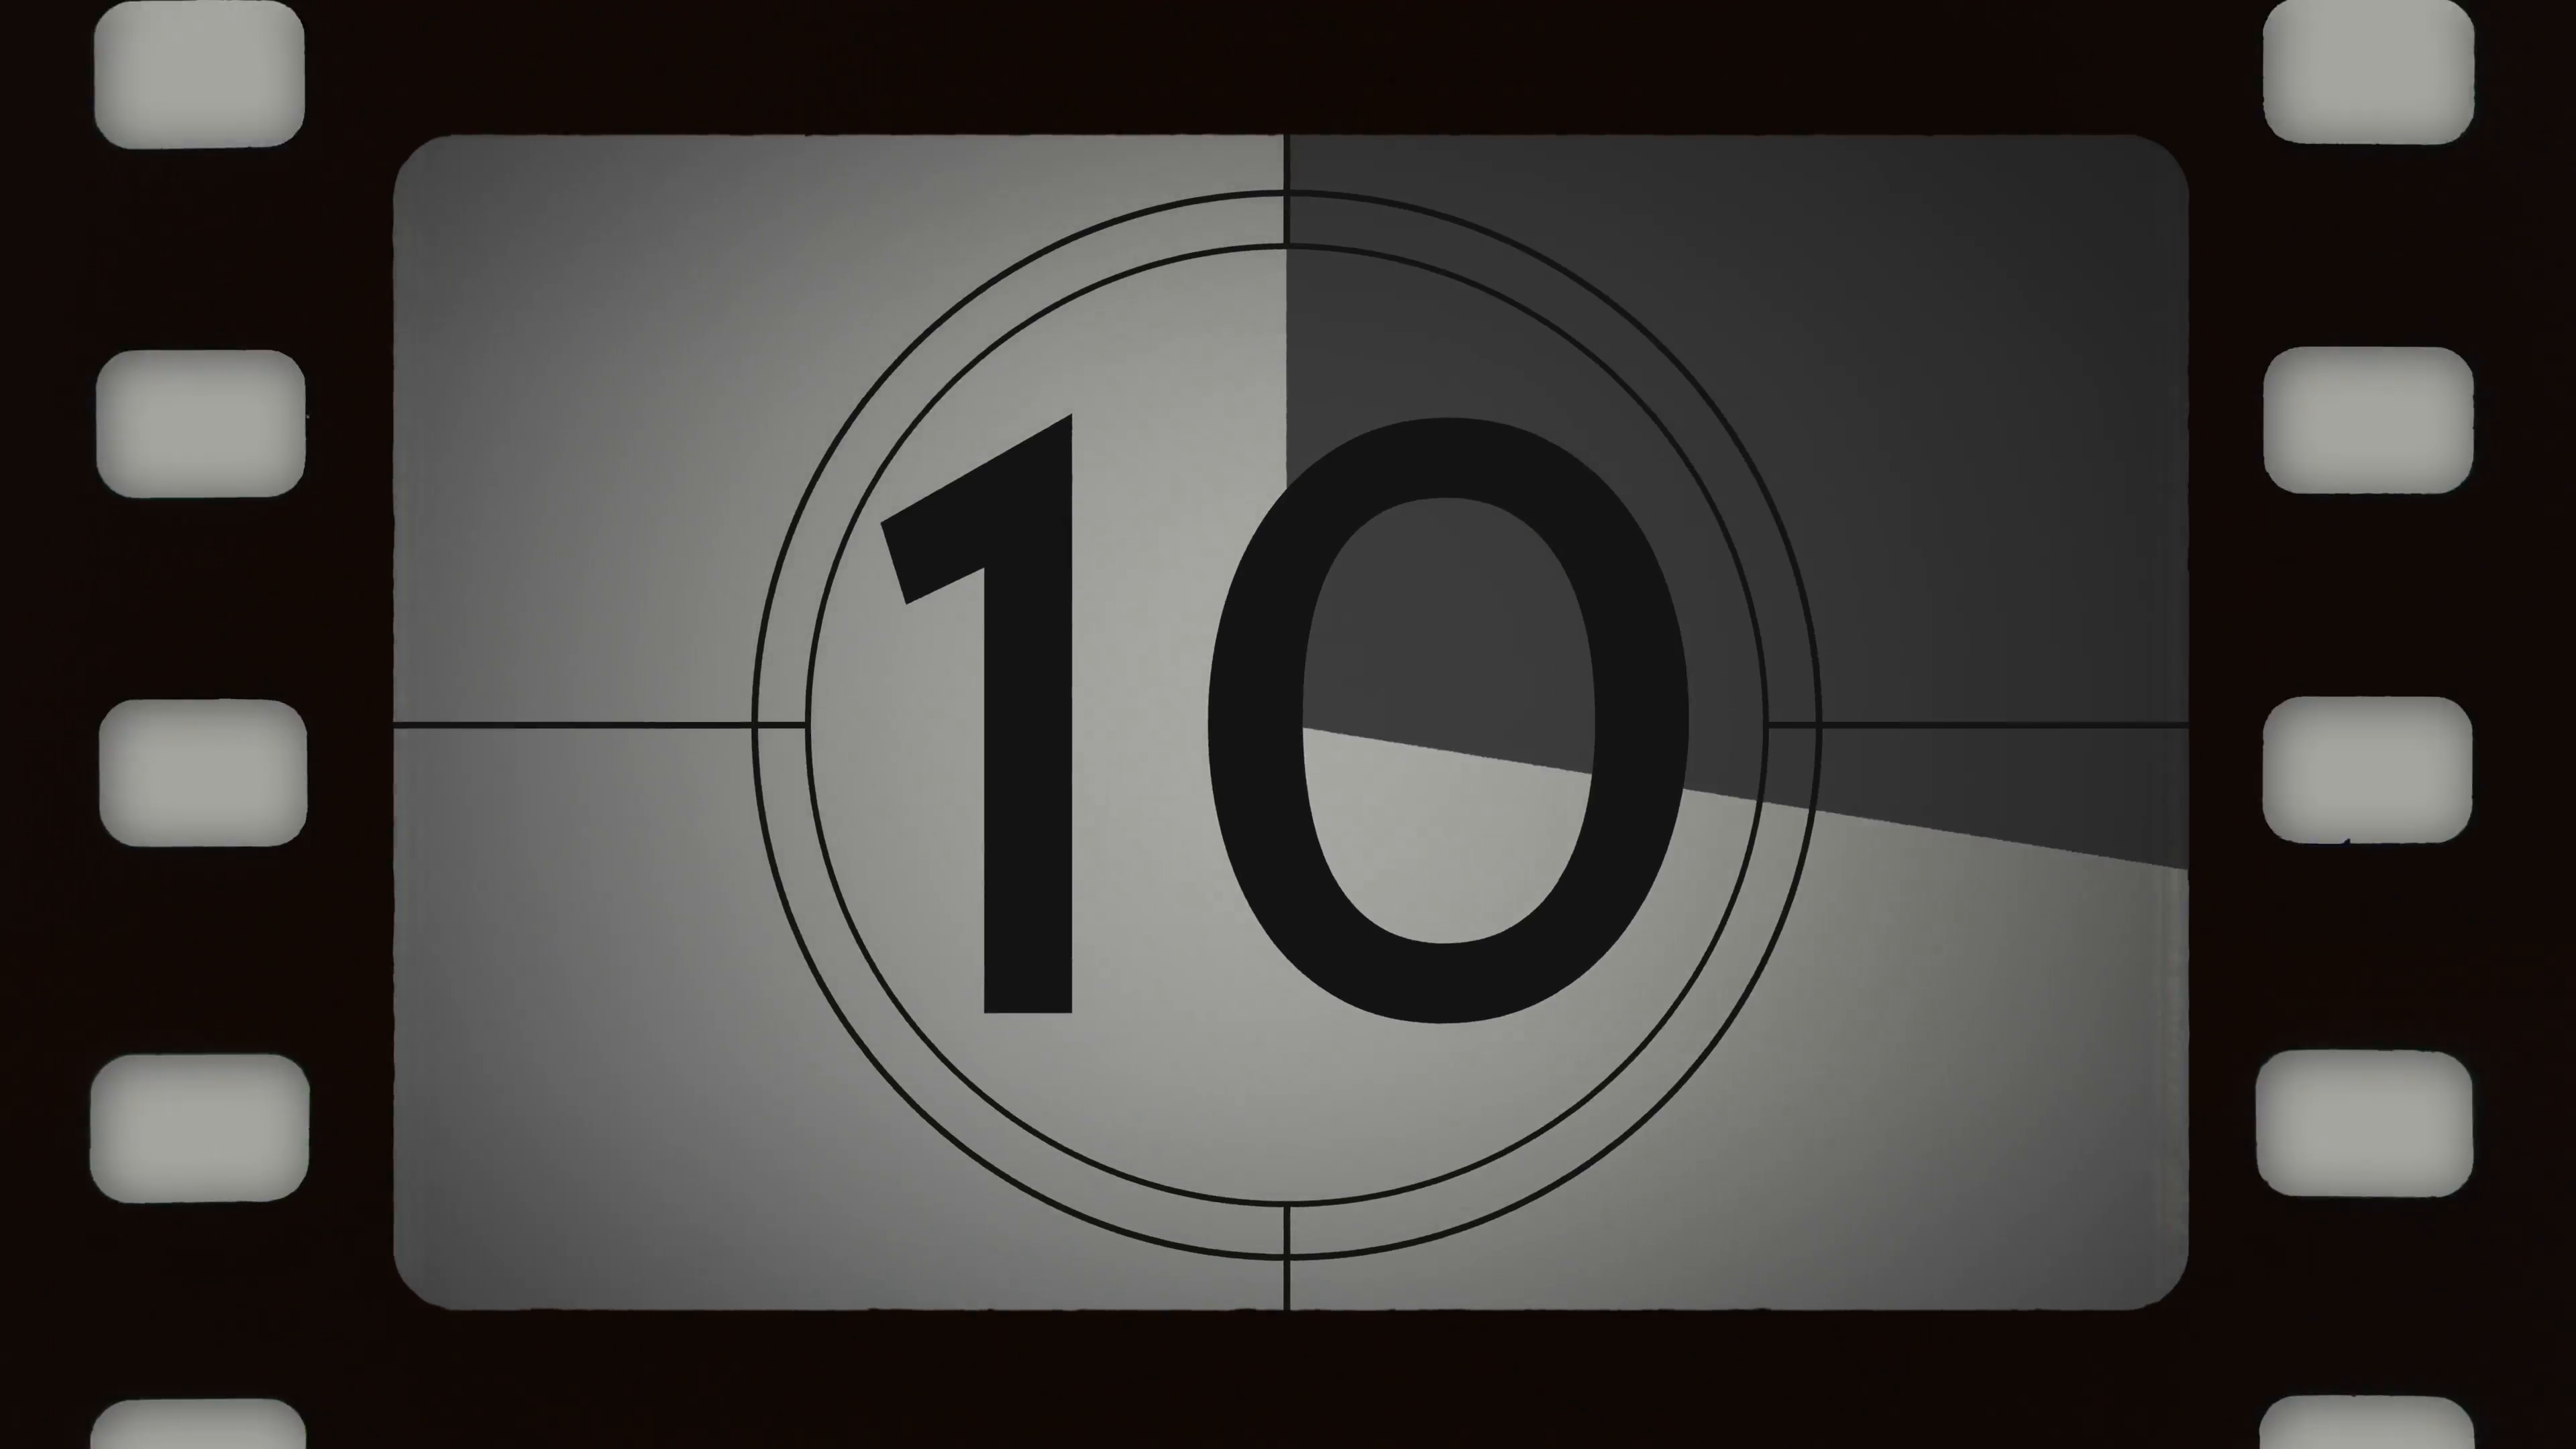 movie-countdown-animation-from-ten-to-one-animation-of-moving-filmstrip-with-classic-counter_shc5ok3l__F0000.png